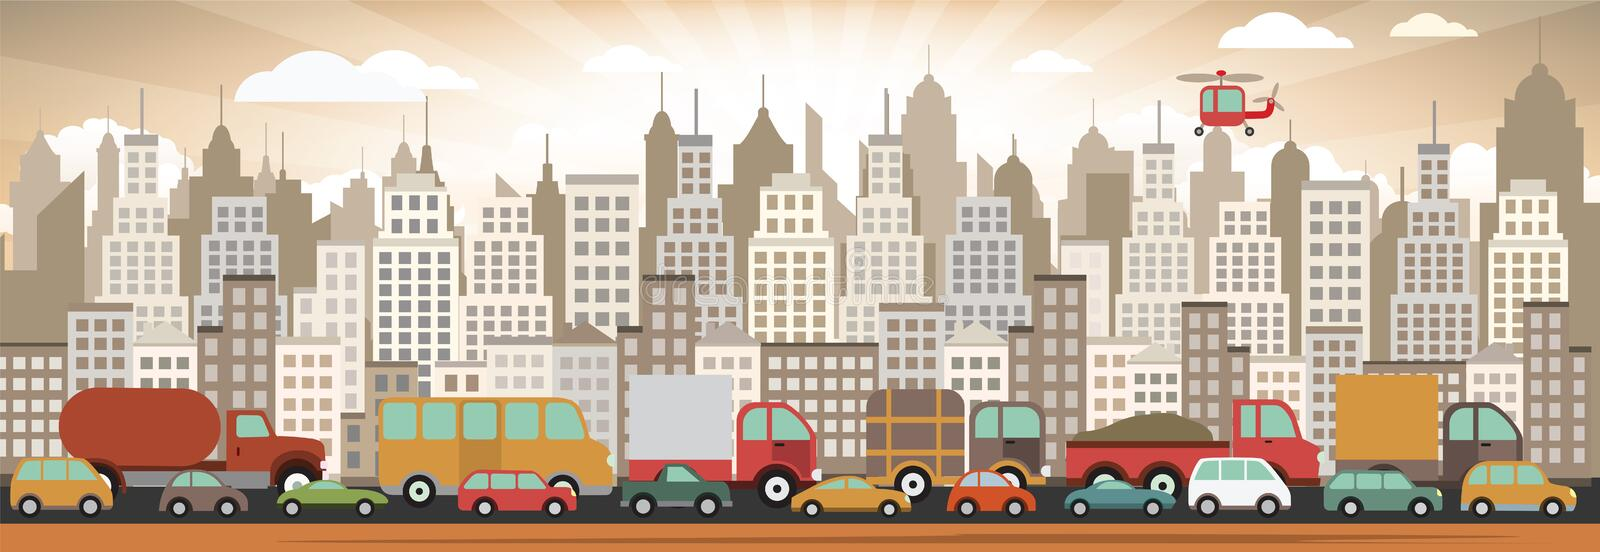 Traffic jam in the city vector illustration